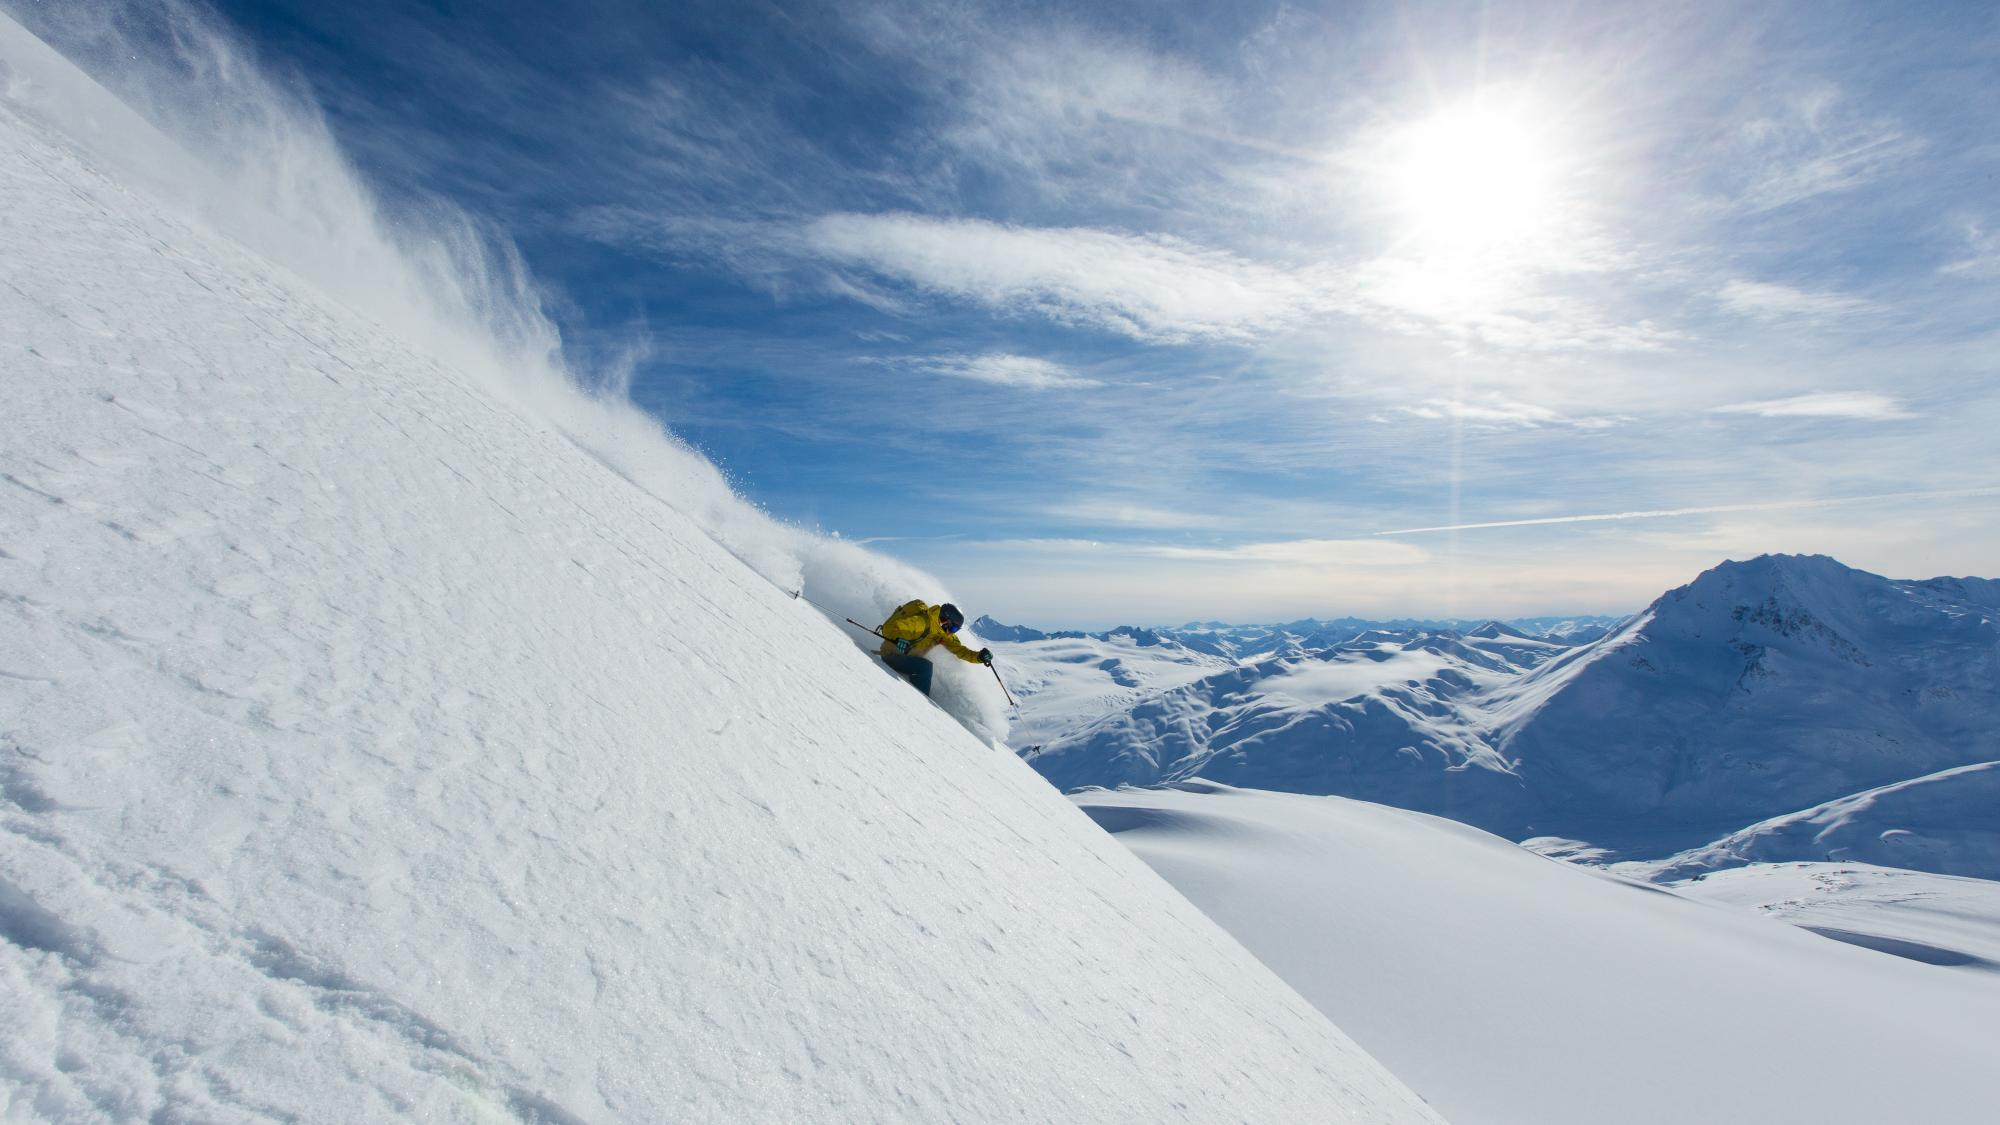 Skier on steep powder on a bluebird day